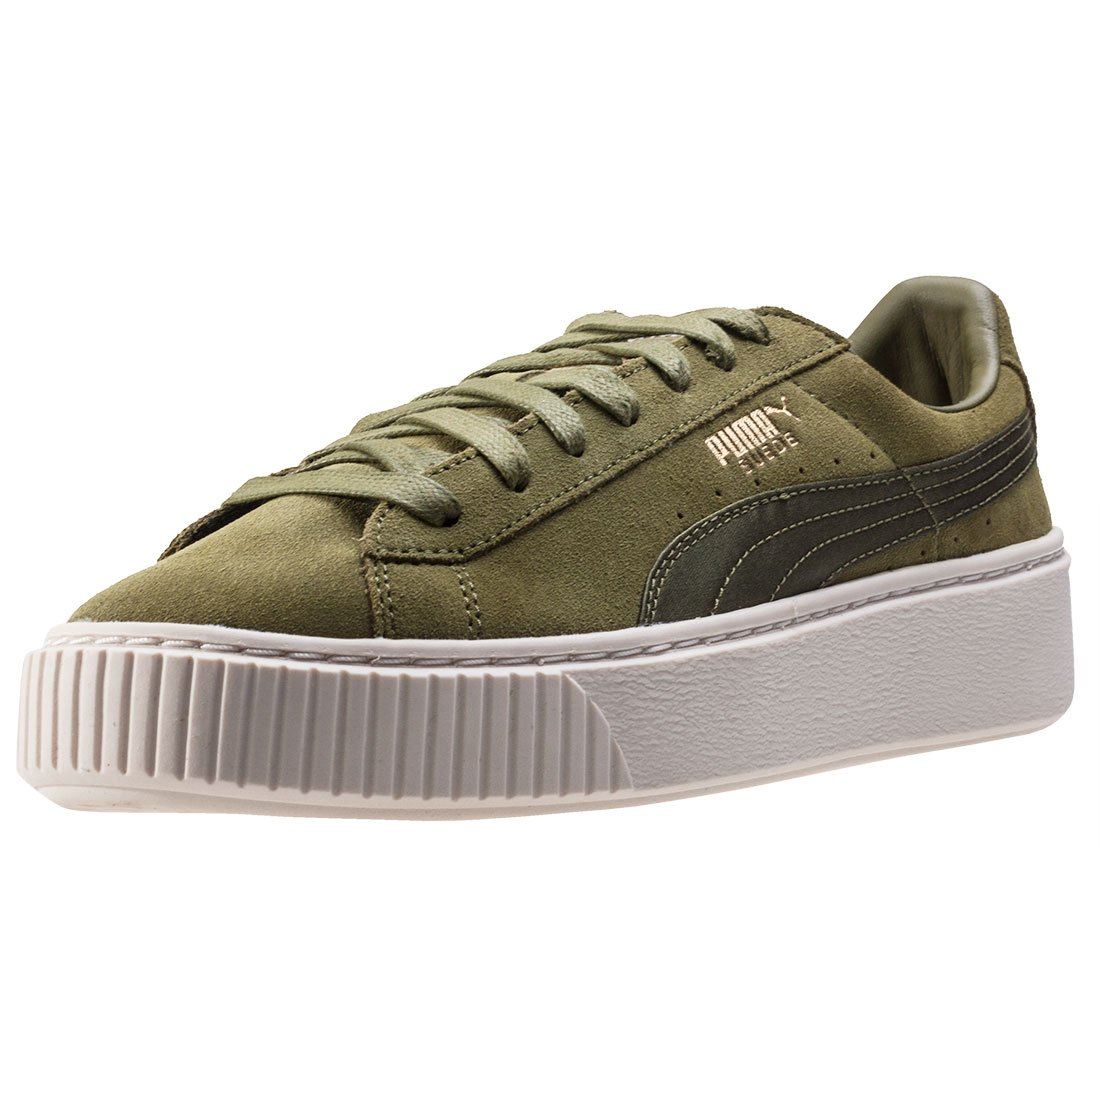 buy popular dc849 cc669 Puma Suede Platform Satin Womens Trainers: Amazon.co.uk ...